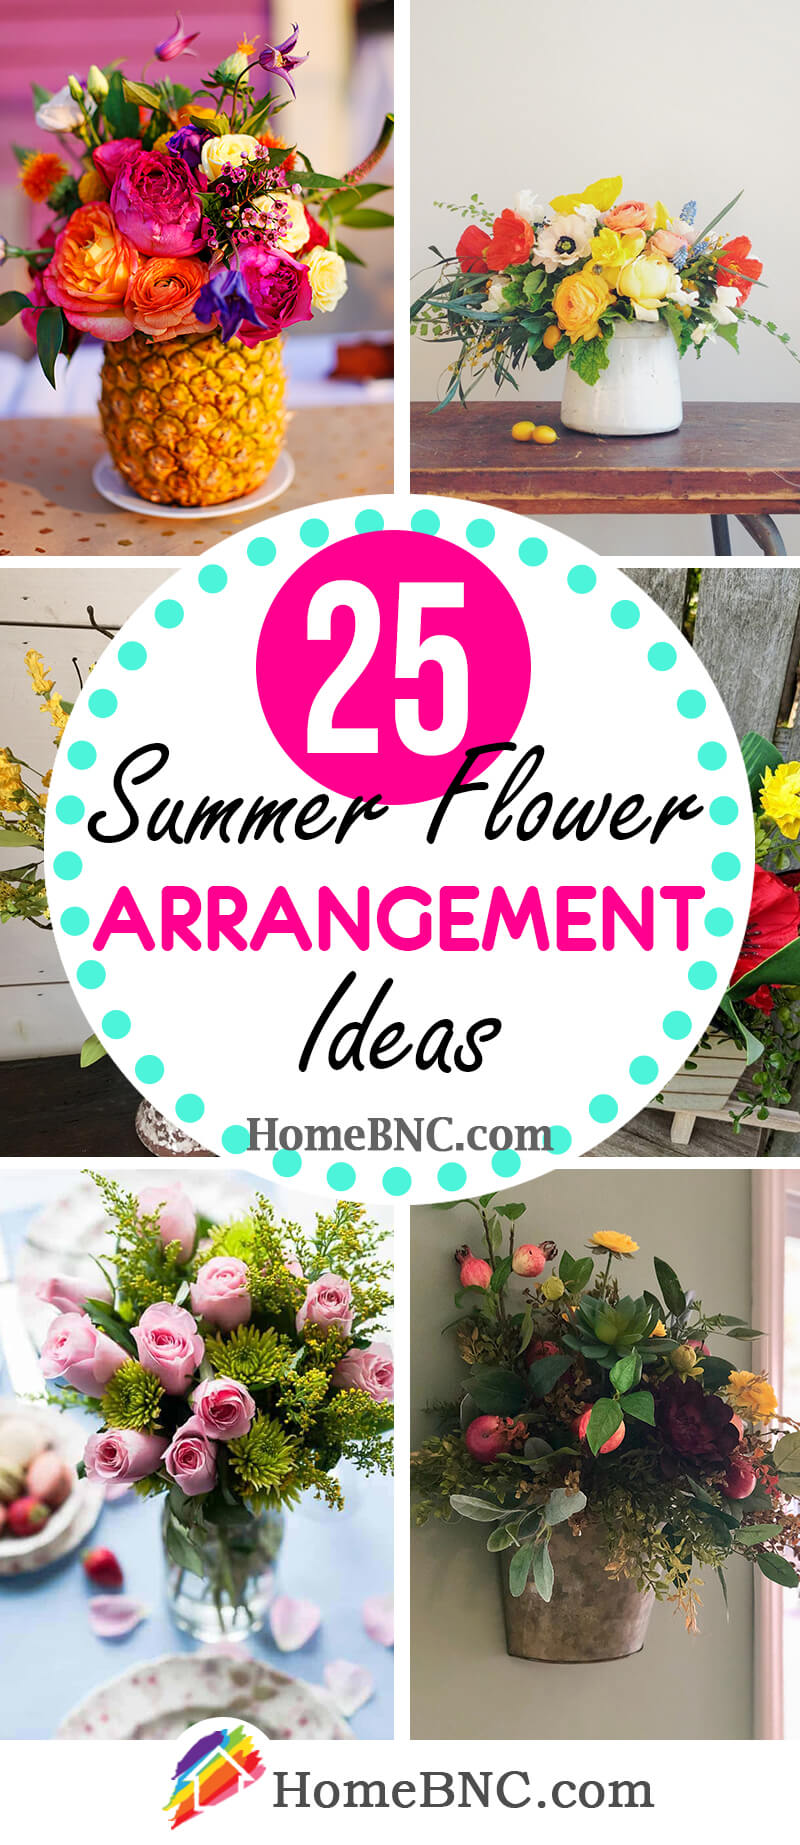 Summer Flower Arrangement Ideas